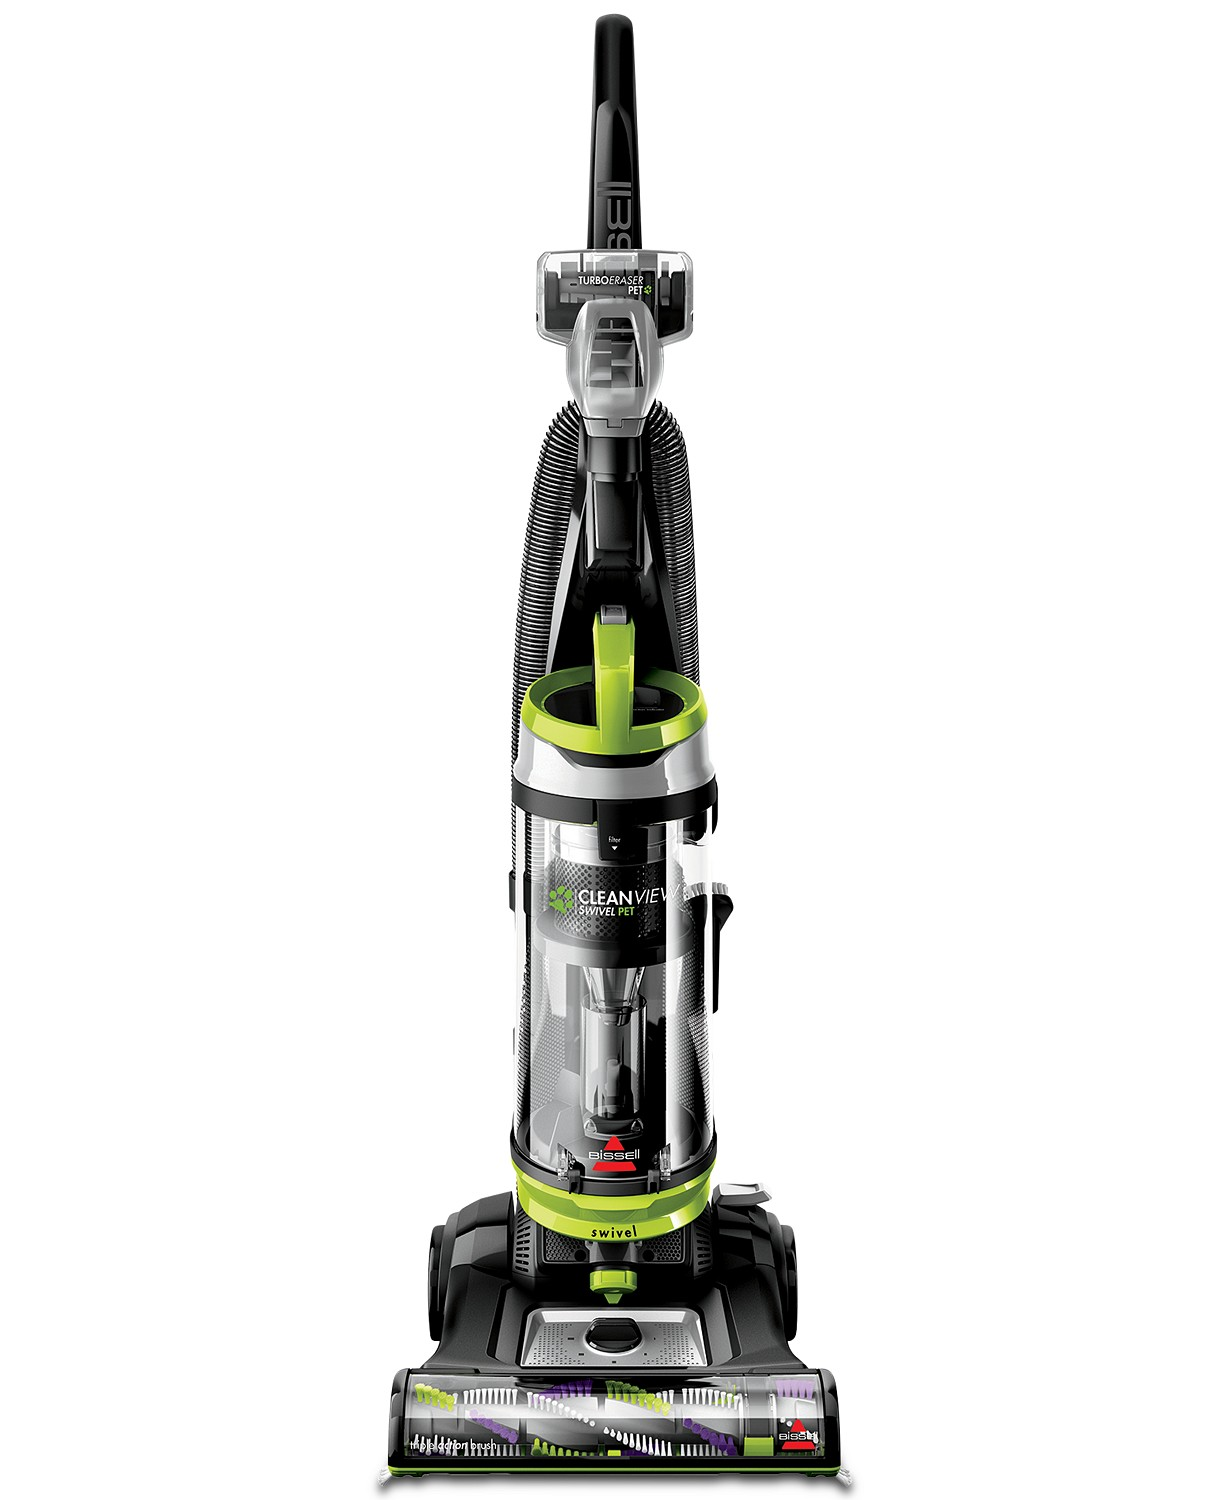 Bissell 2316 Cleanview Swivel Pet Vacuum Just Slashed